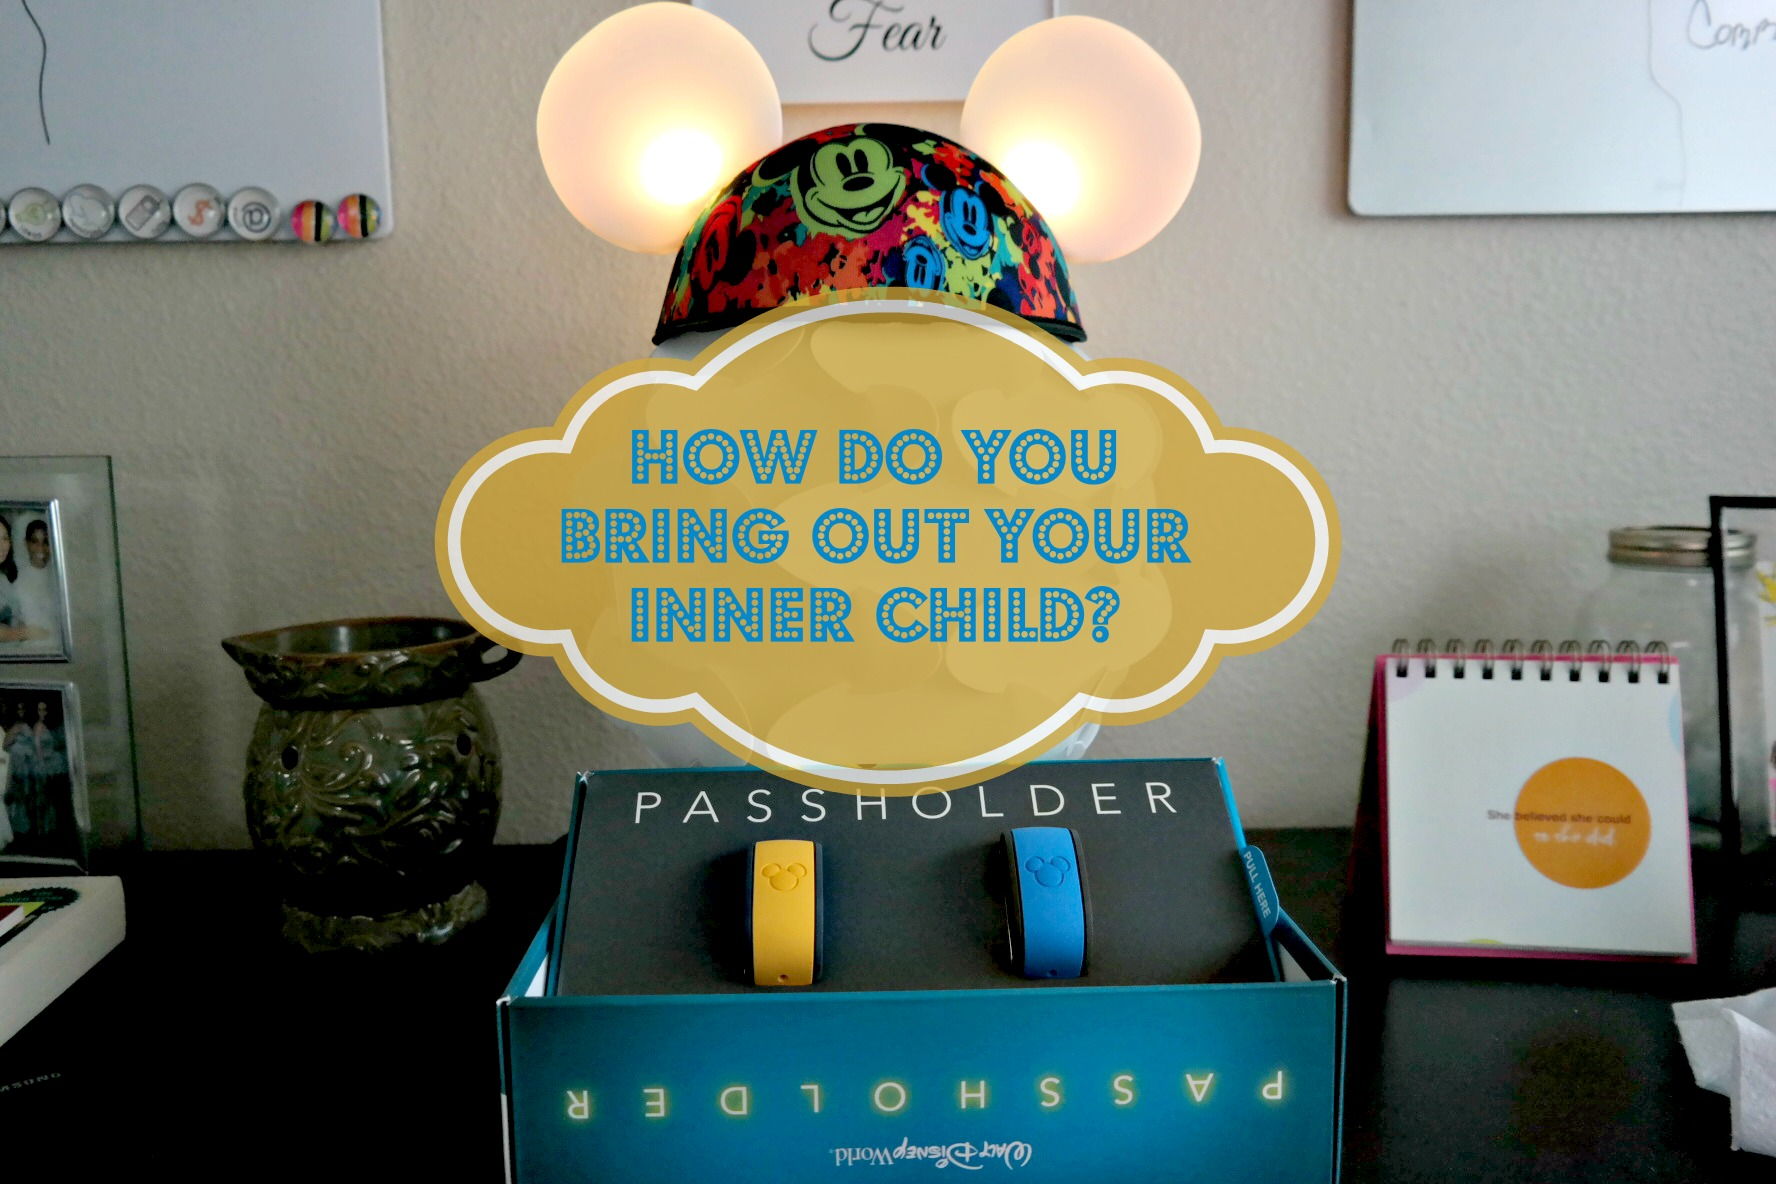 How do you bring out your inner child?